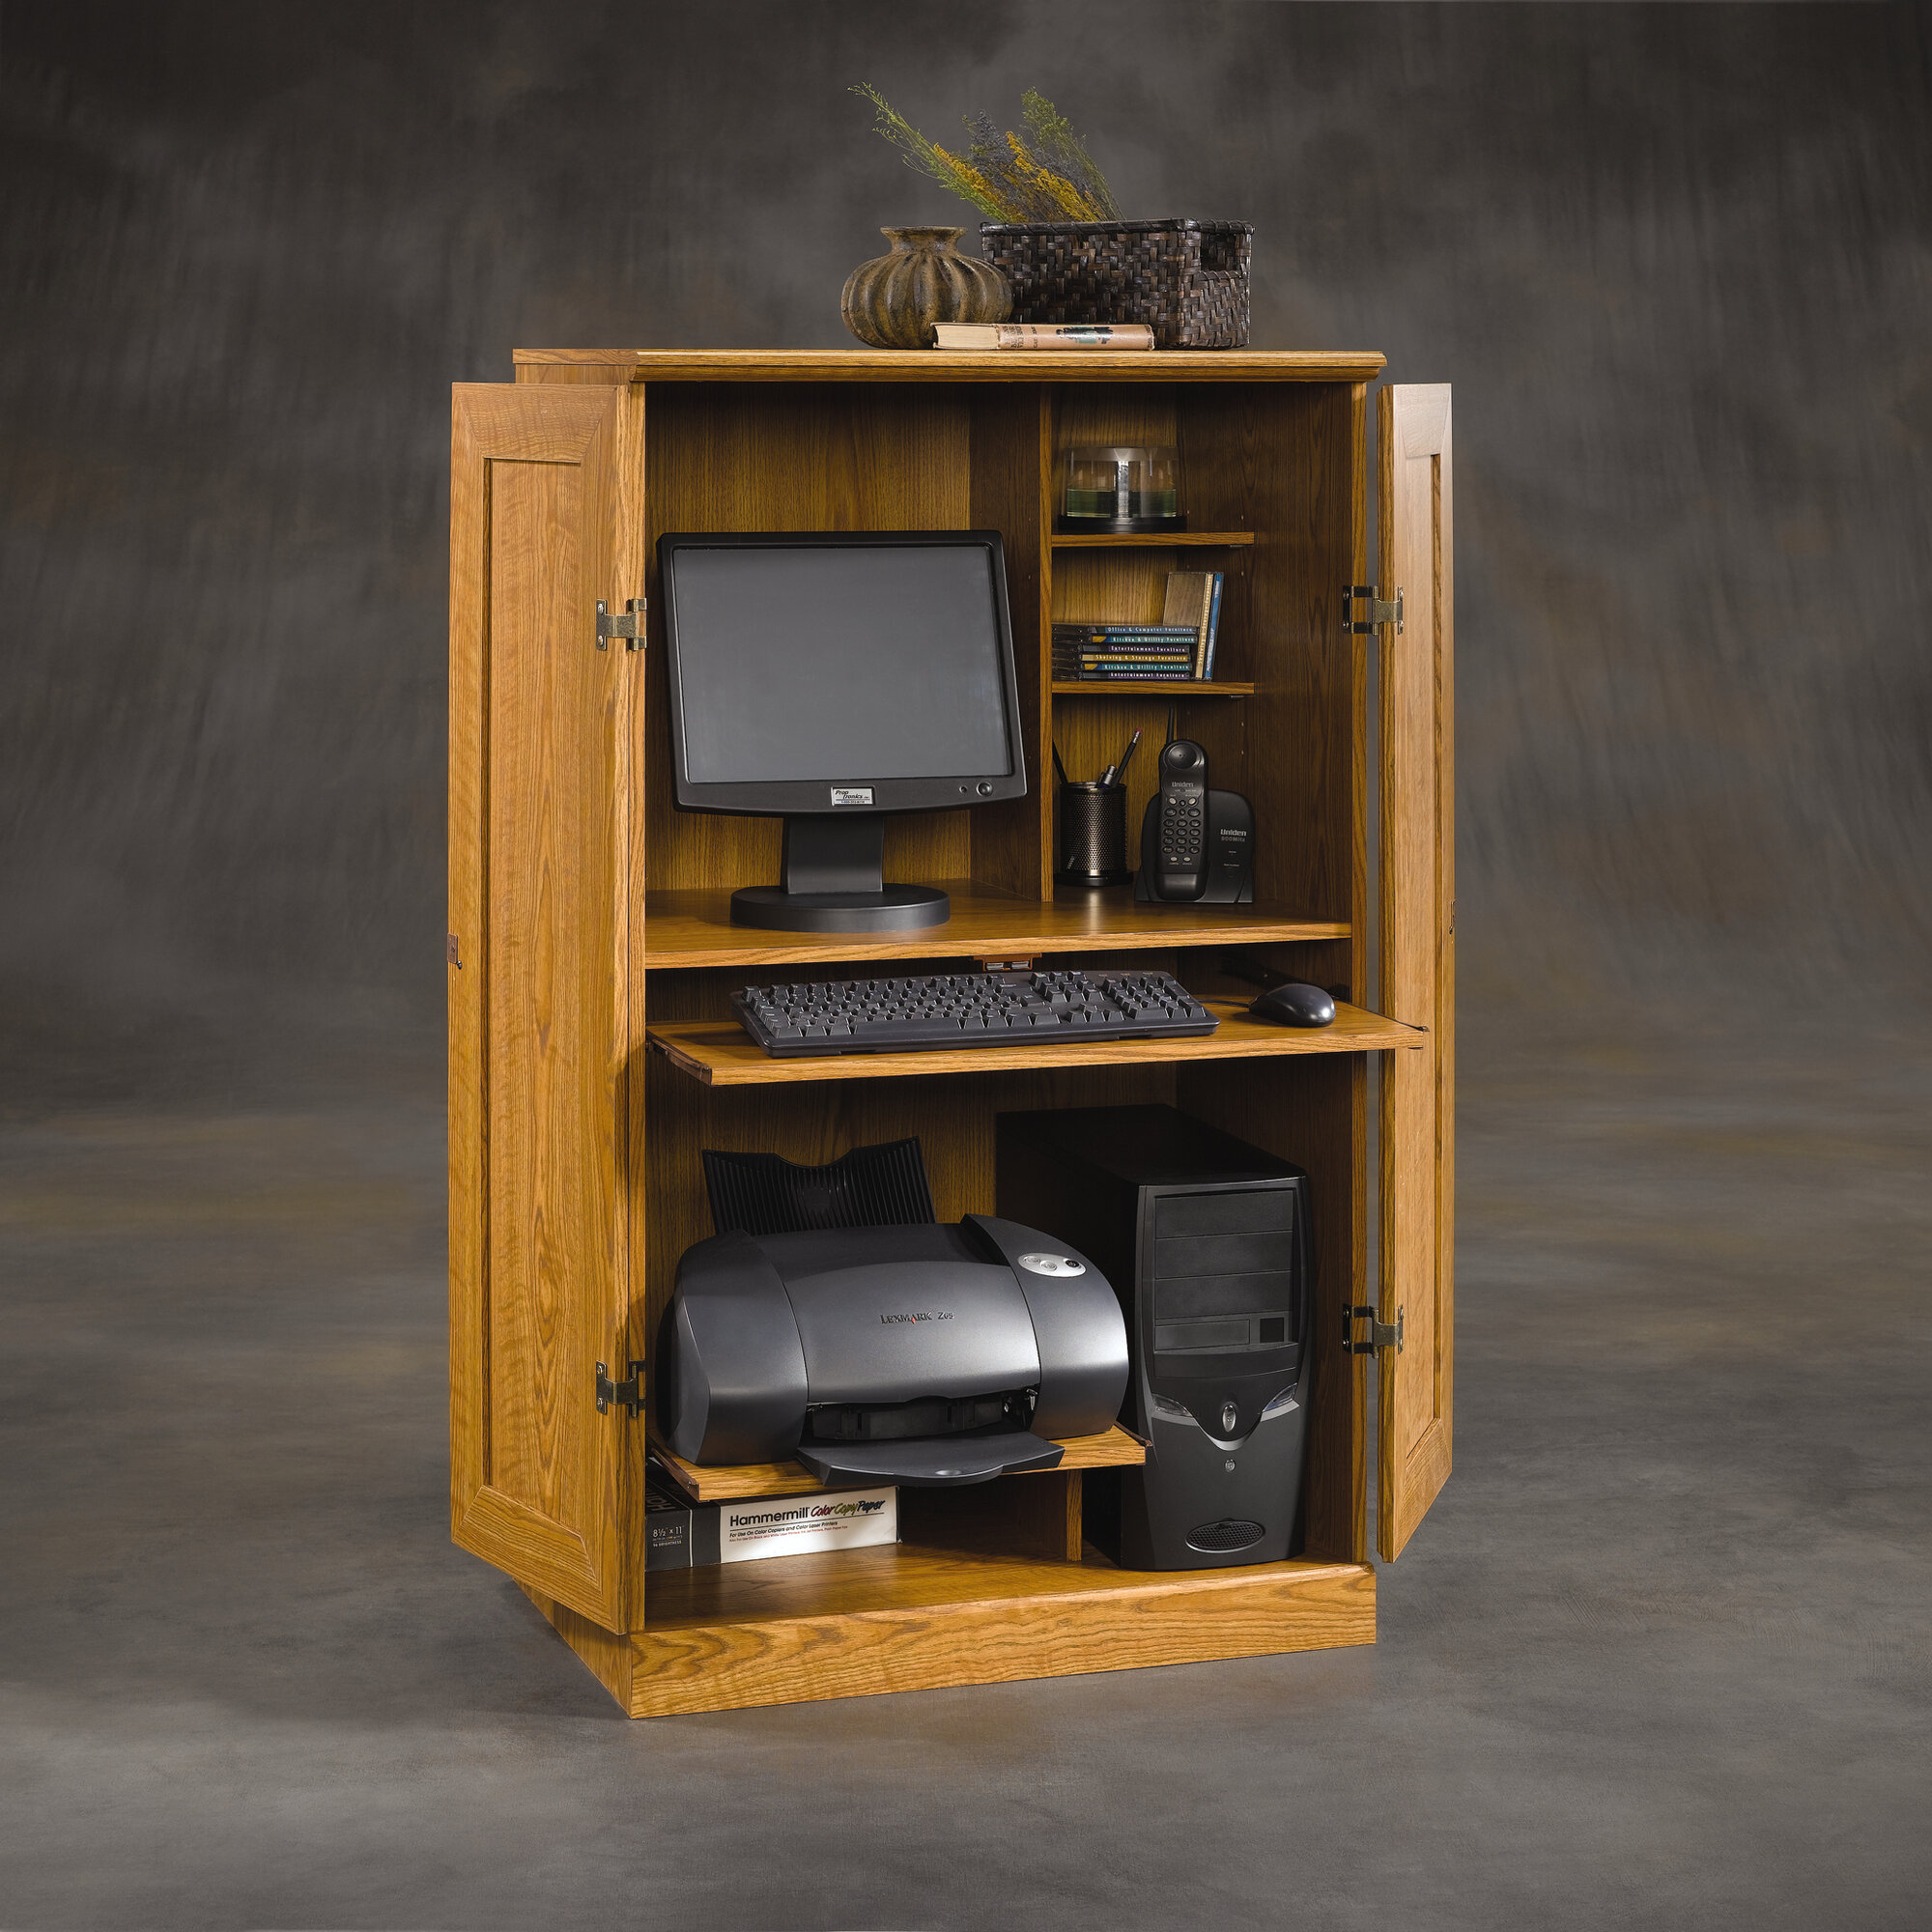 Desk Cabinet: Space Saver Wood Computer Cabinet Armoire Desk Home Office